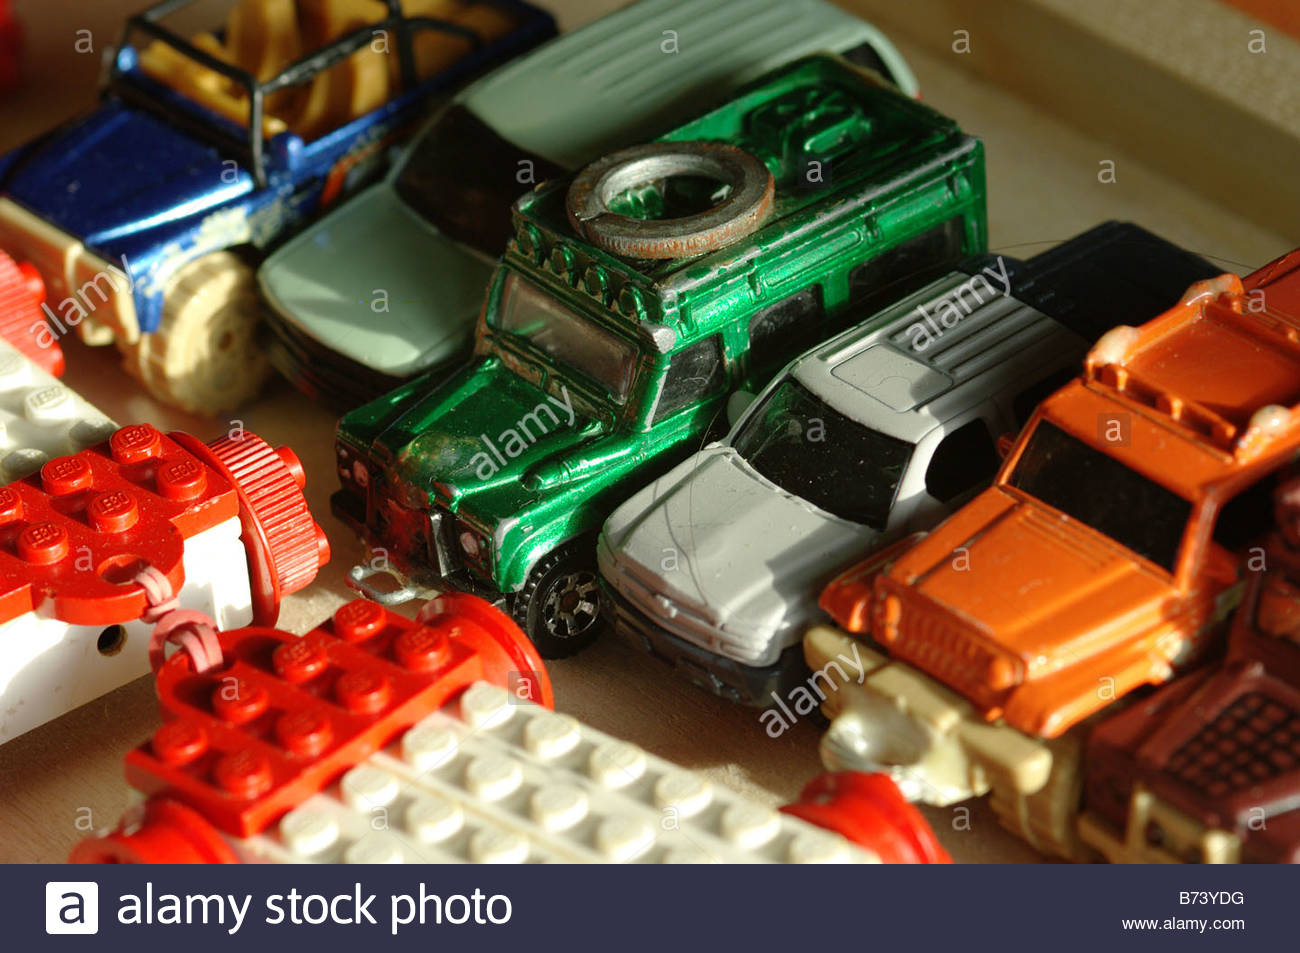 matchbox cars toy toys stock  matchbox cars toy toys stock images page  alamy